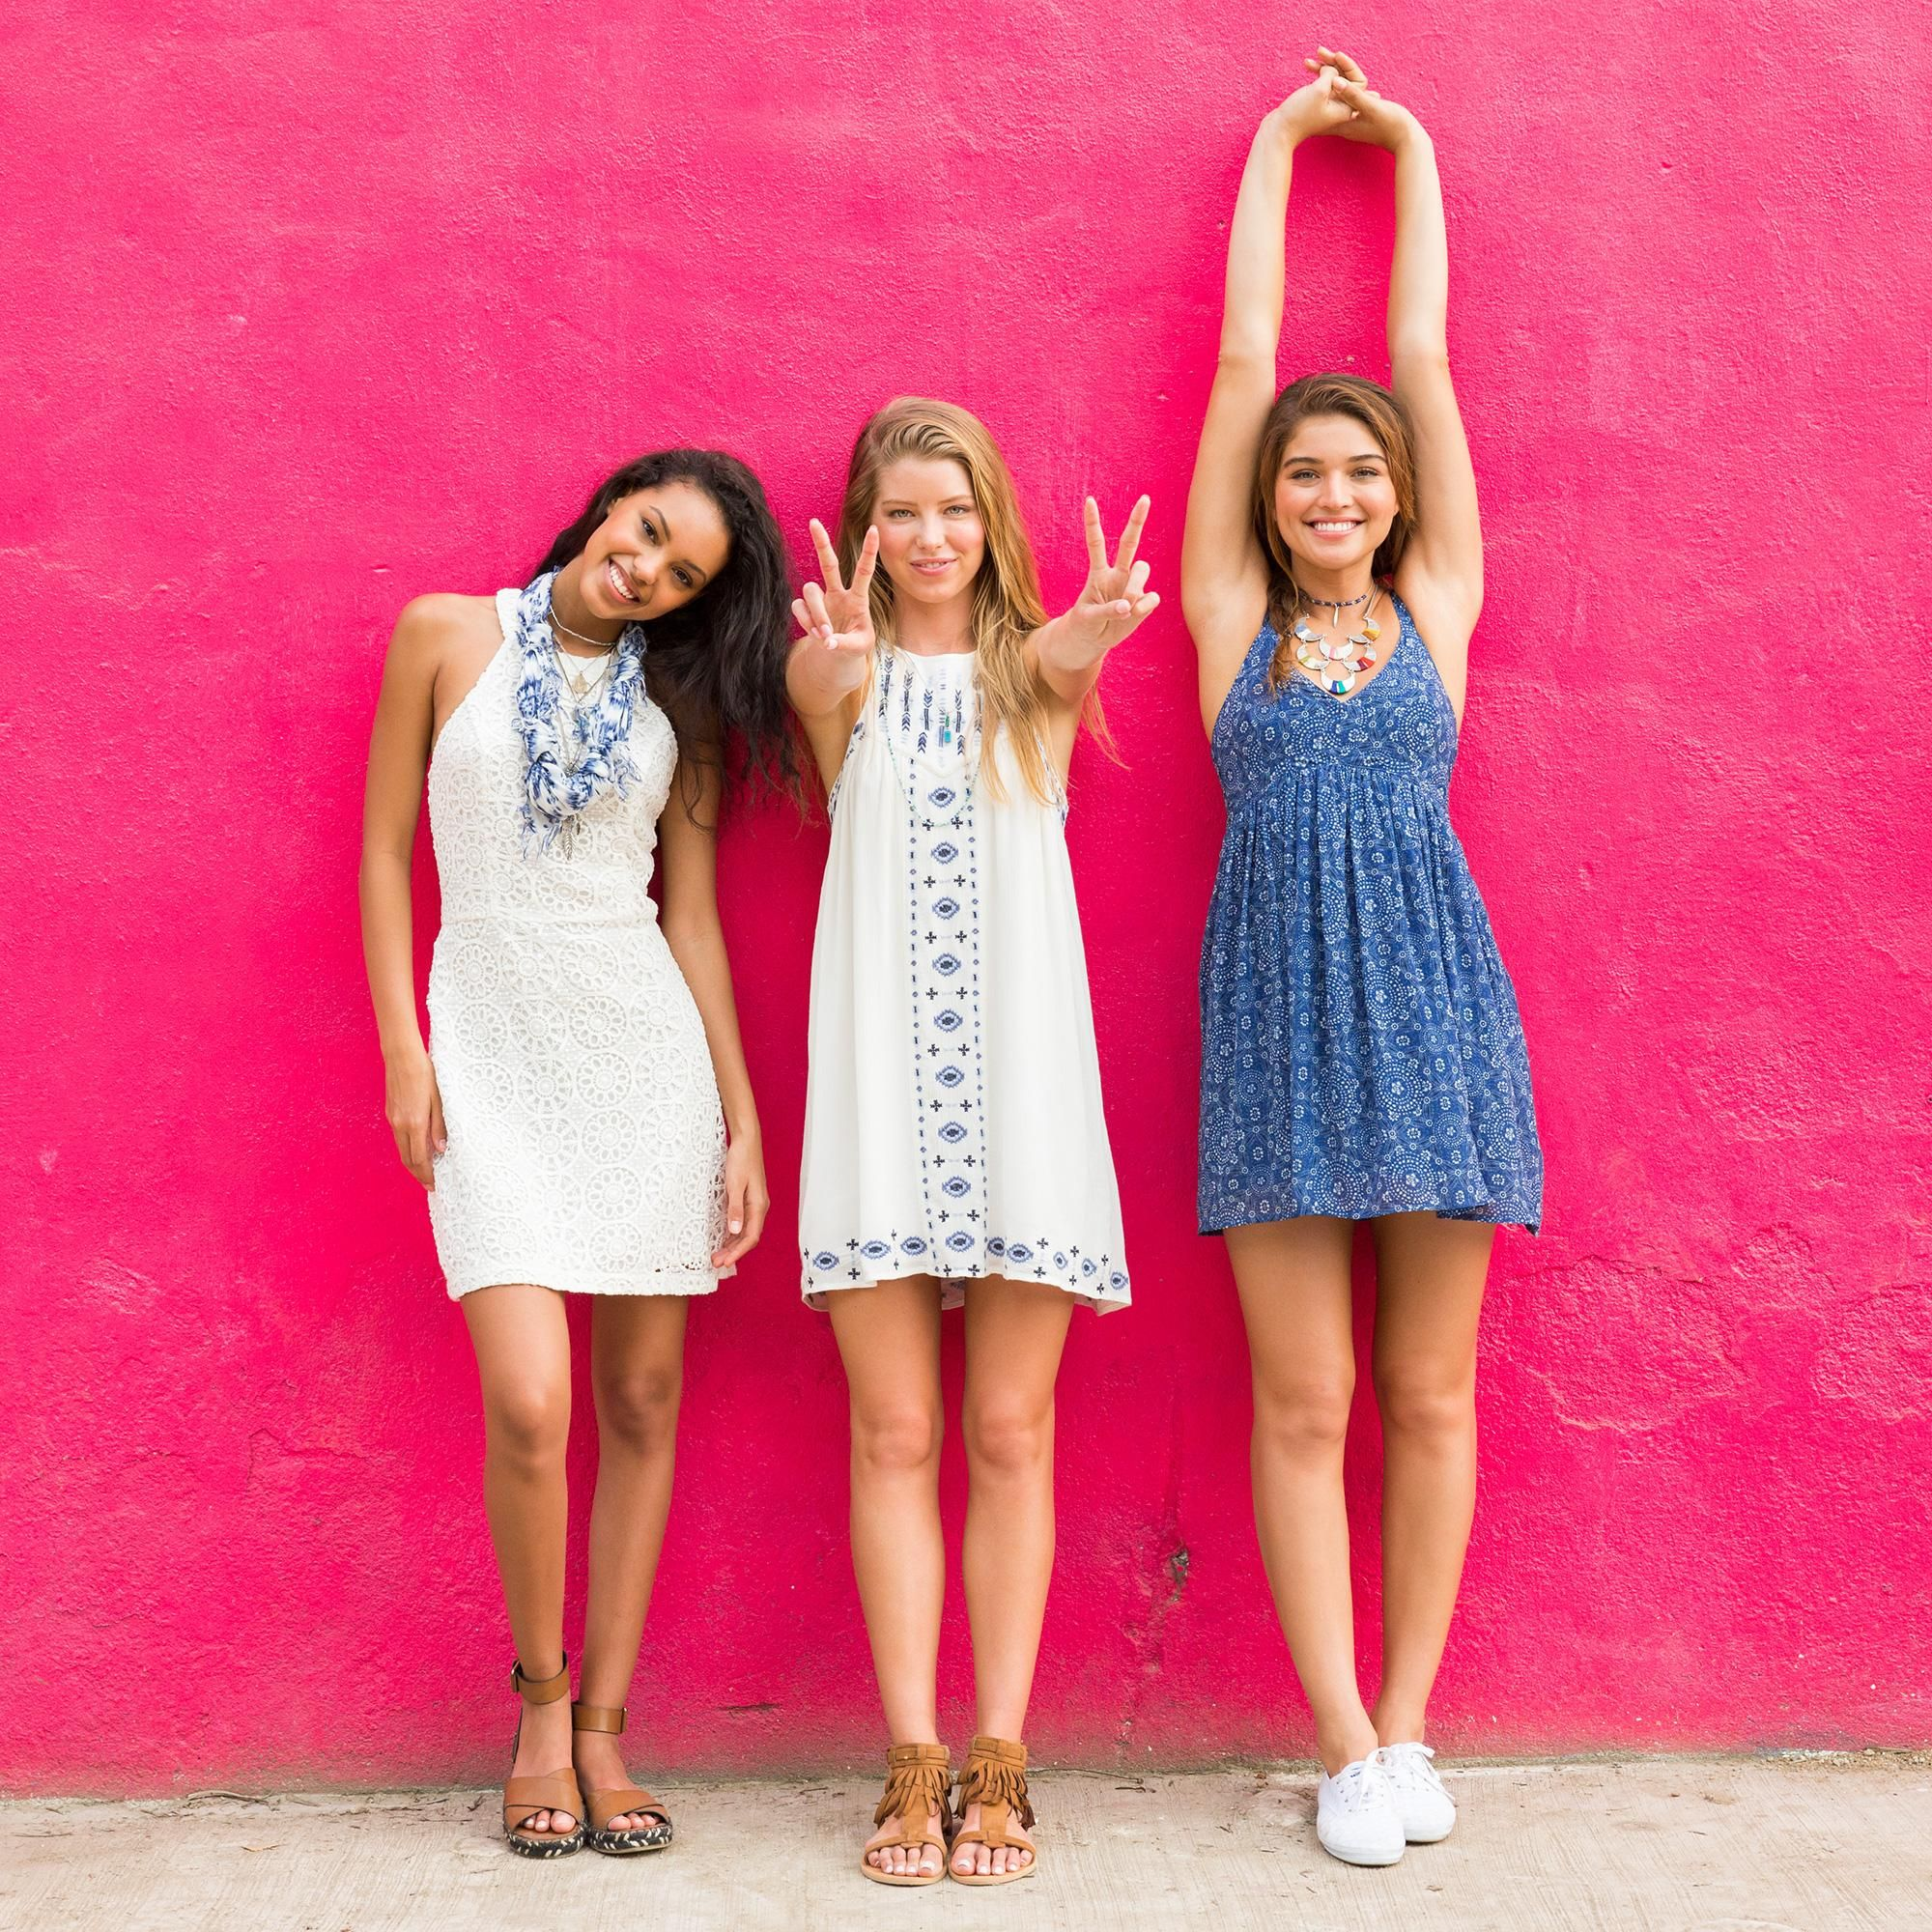 Our dresses: Soft. Sweet. Super cute.